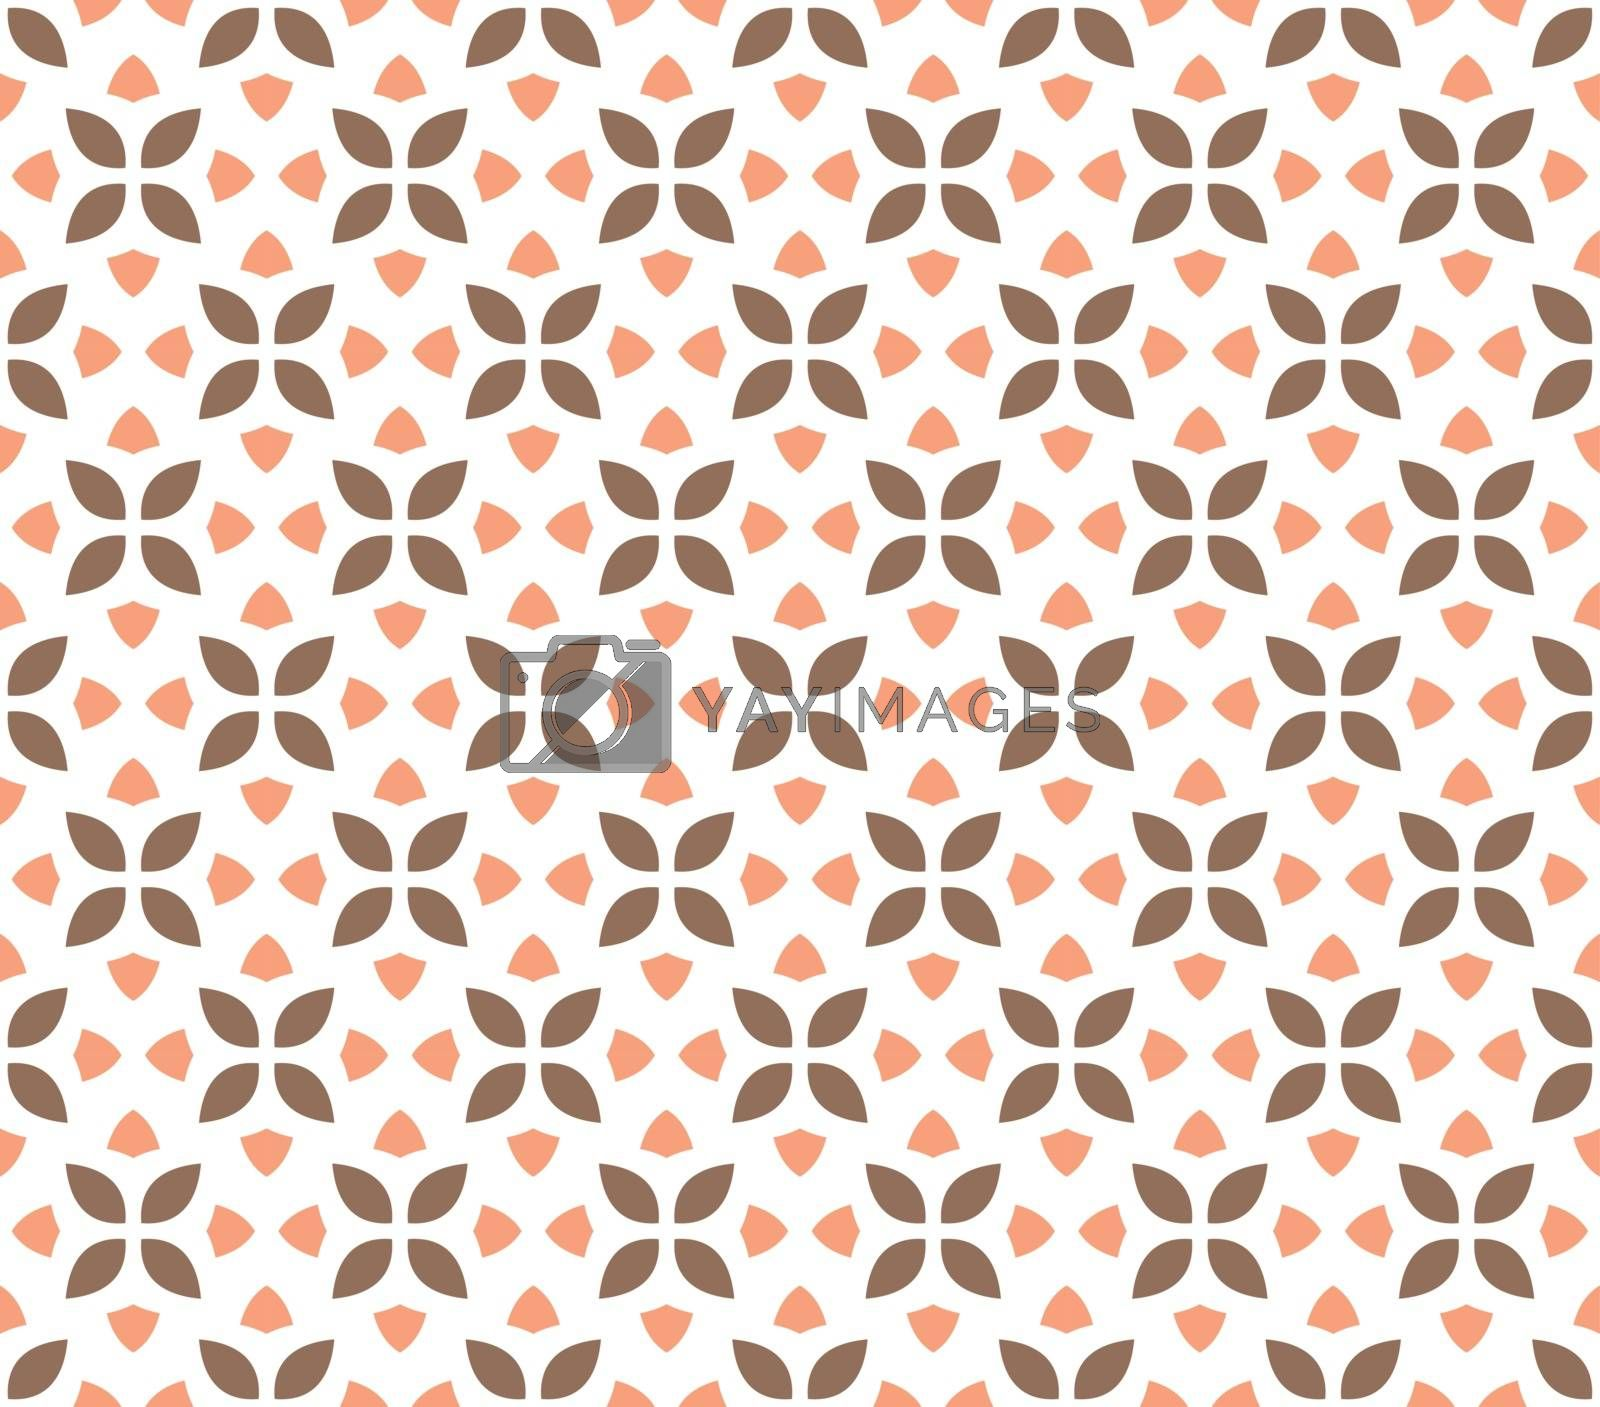 Abstract seamless geometric pattern background with lines, oriental ornaments patterns